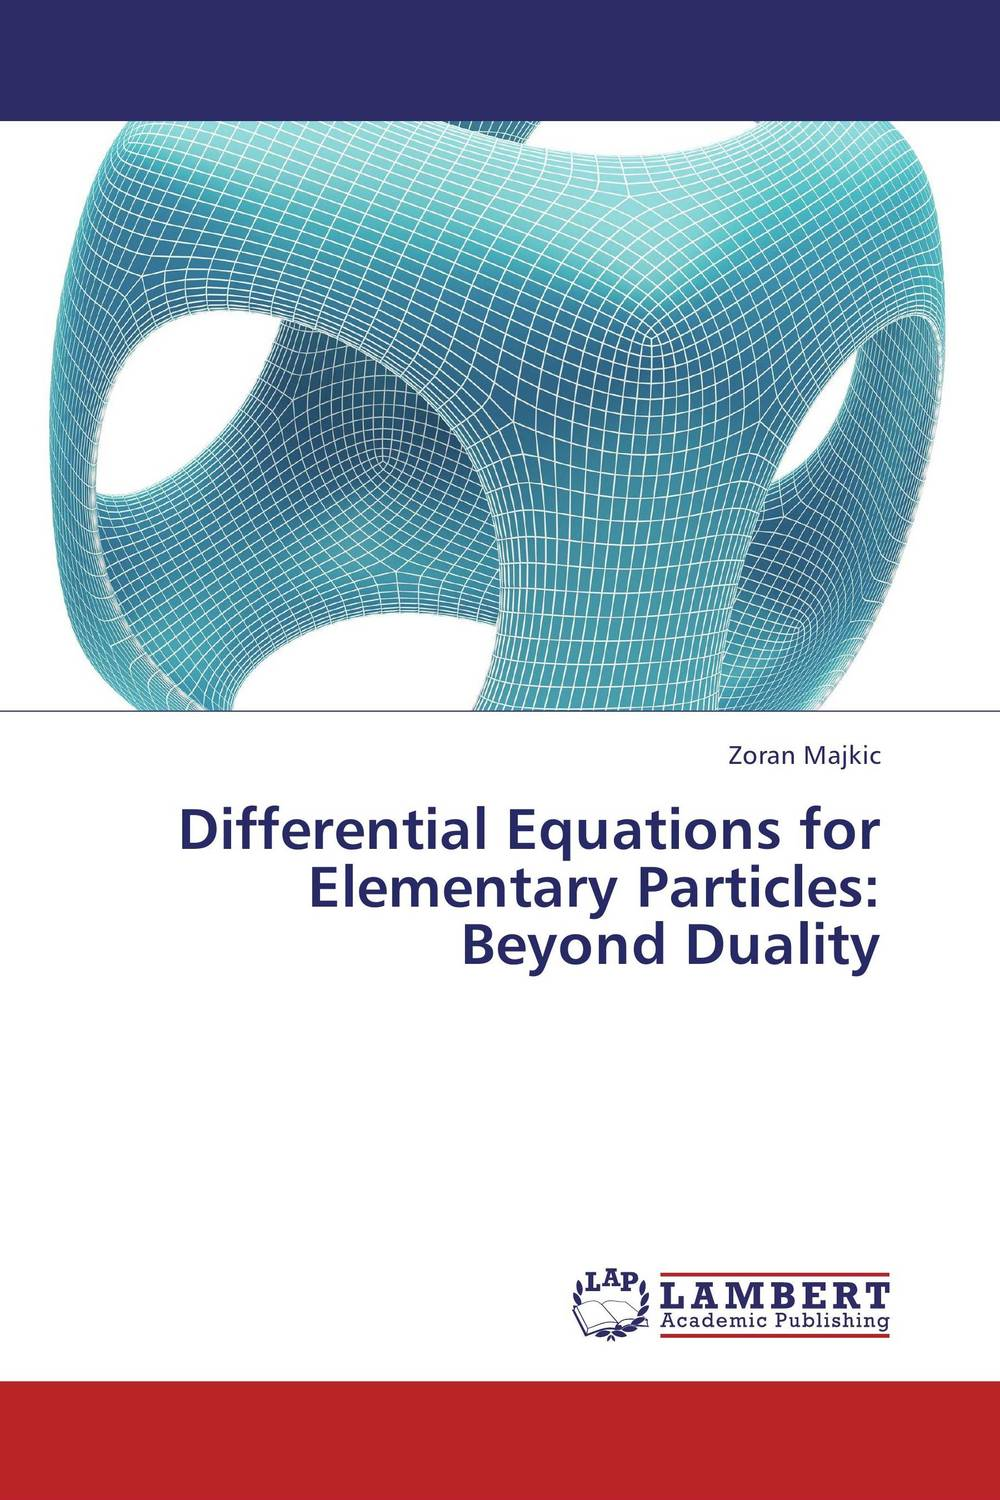 Differential Equations for Elementary Particles: Beyond Duality collocation methods for volterra integral and related functional differential equations